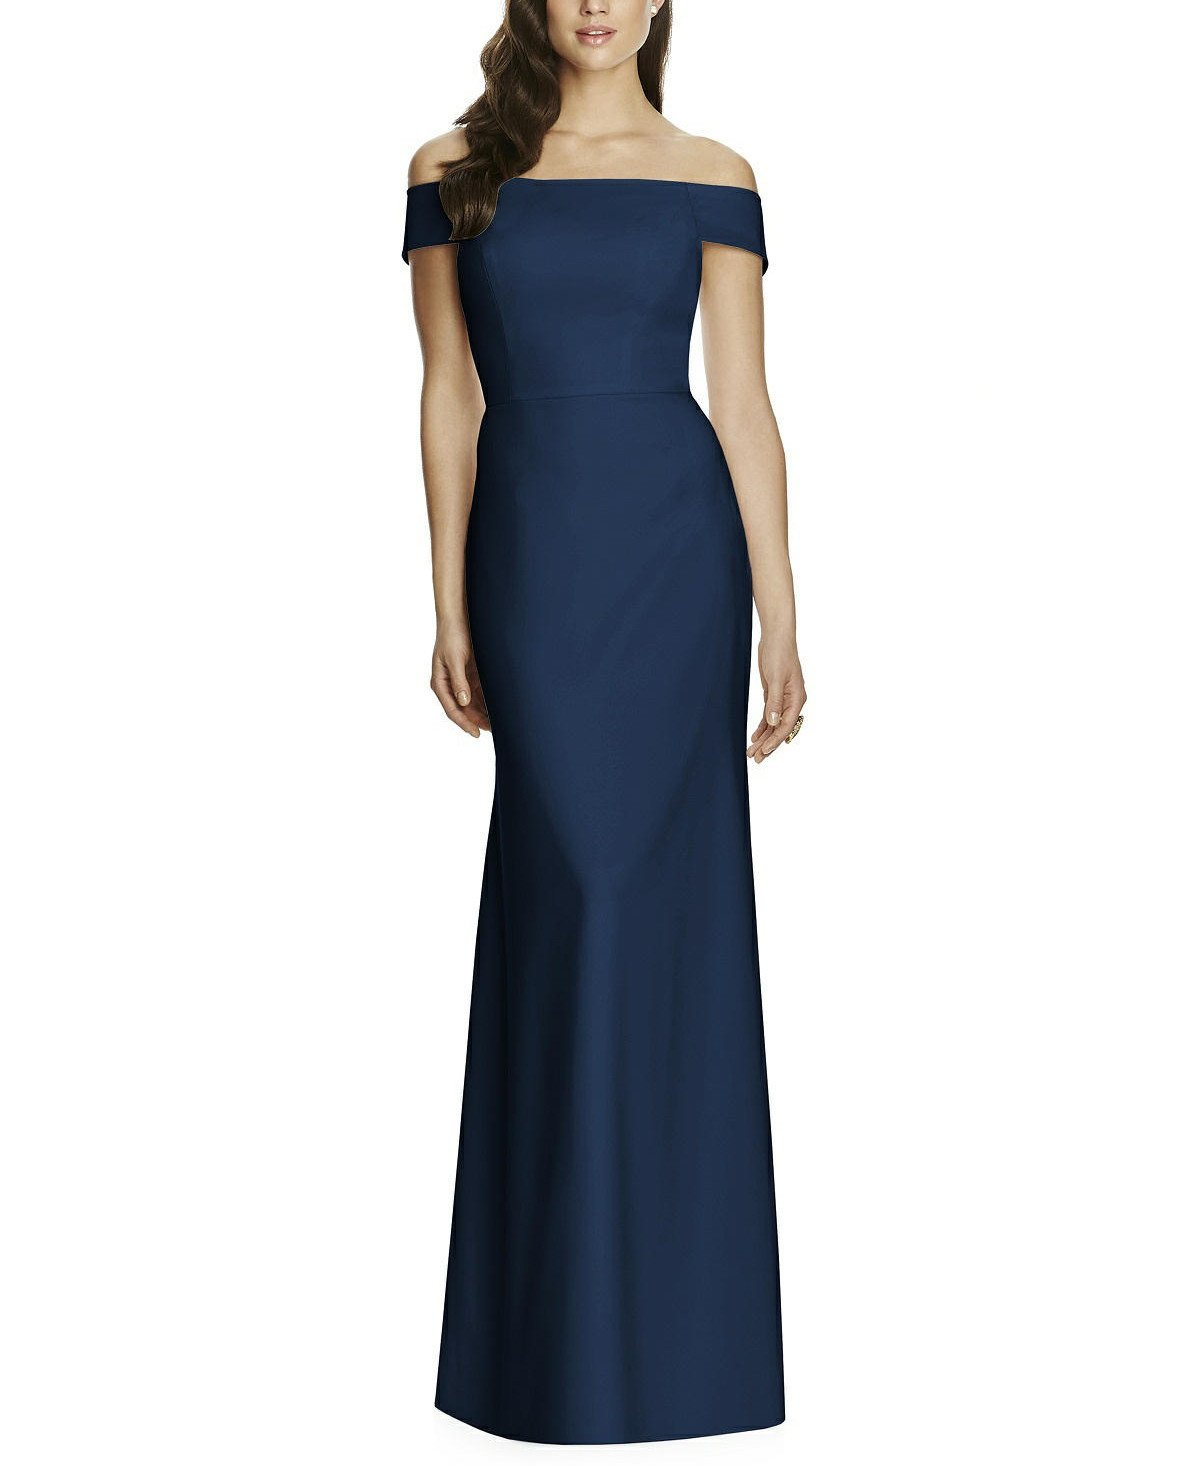 Dessy Collection Style 2987 in Midnight